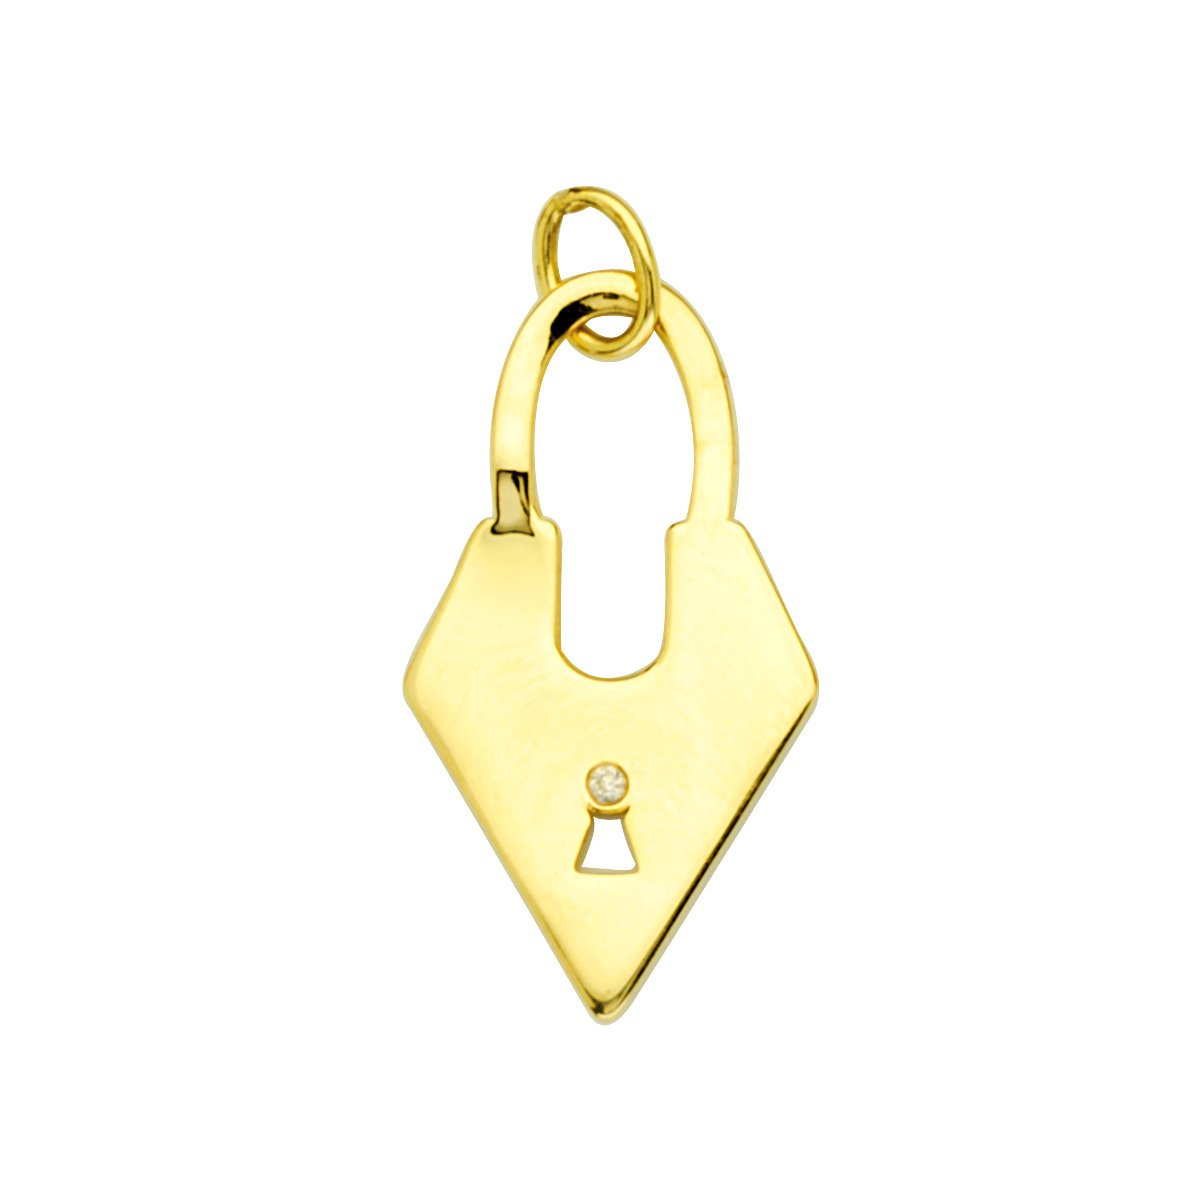 Lock Pendant 1 Pt Diamond Lock Pendant 14kt Gold